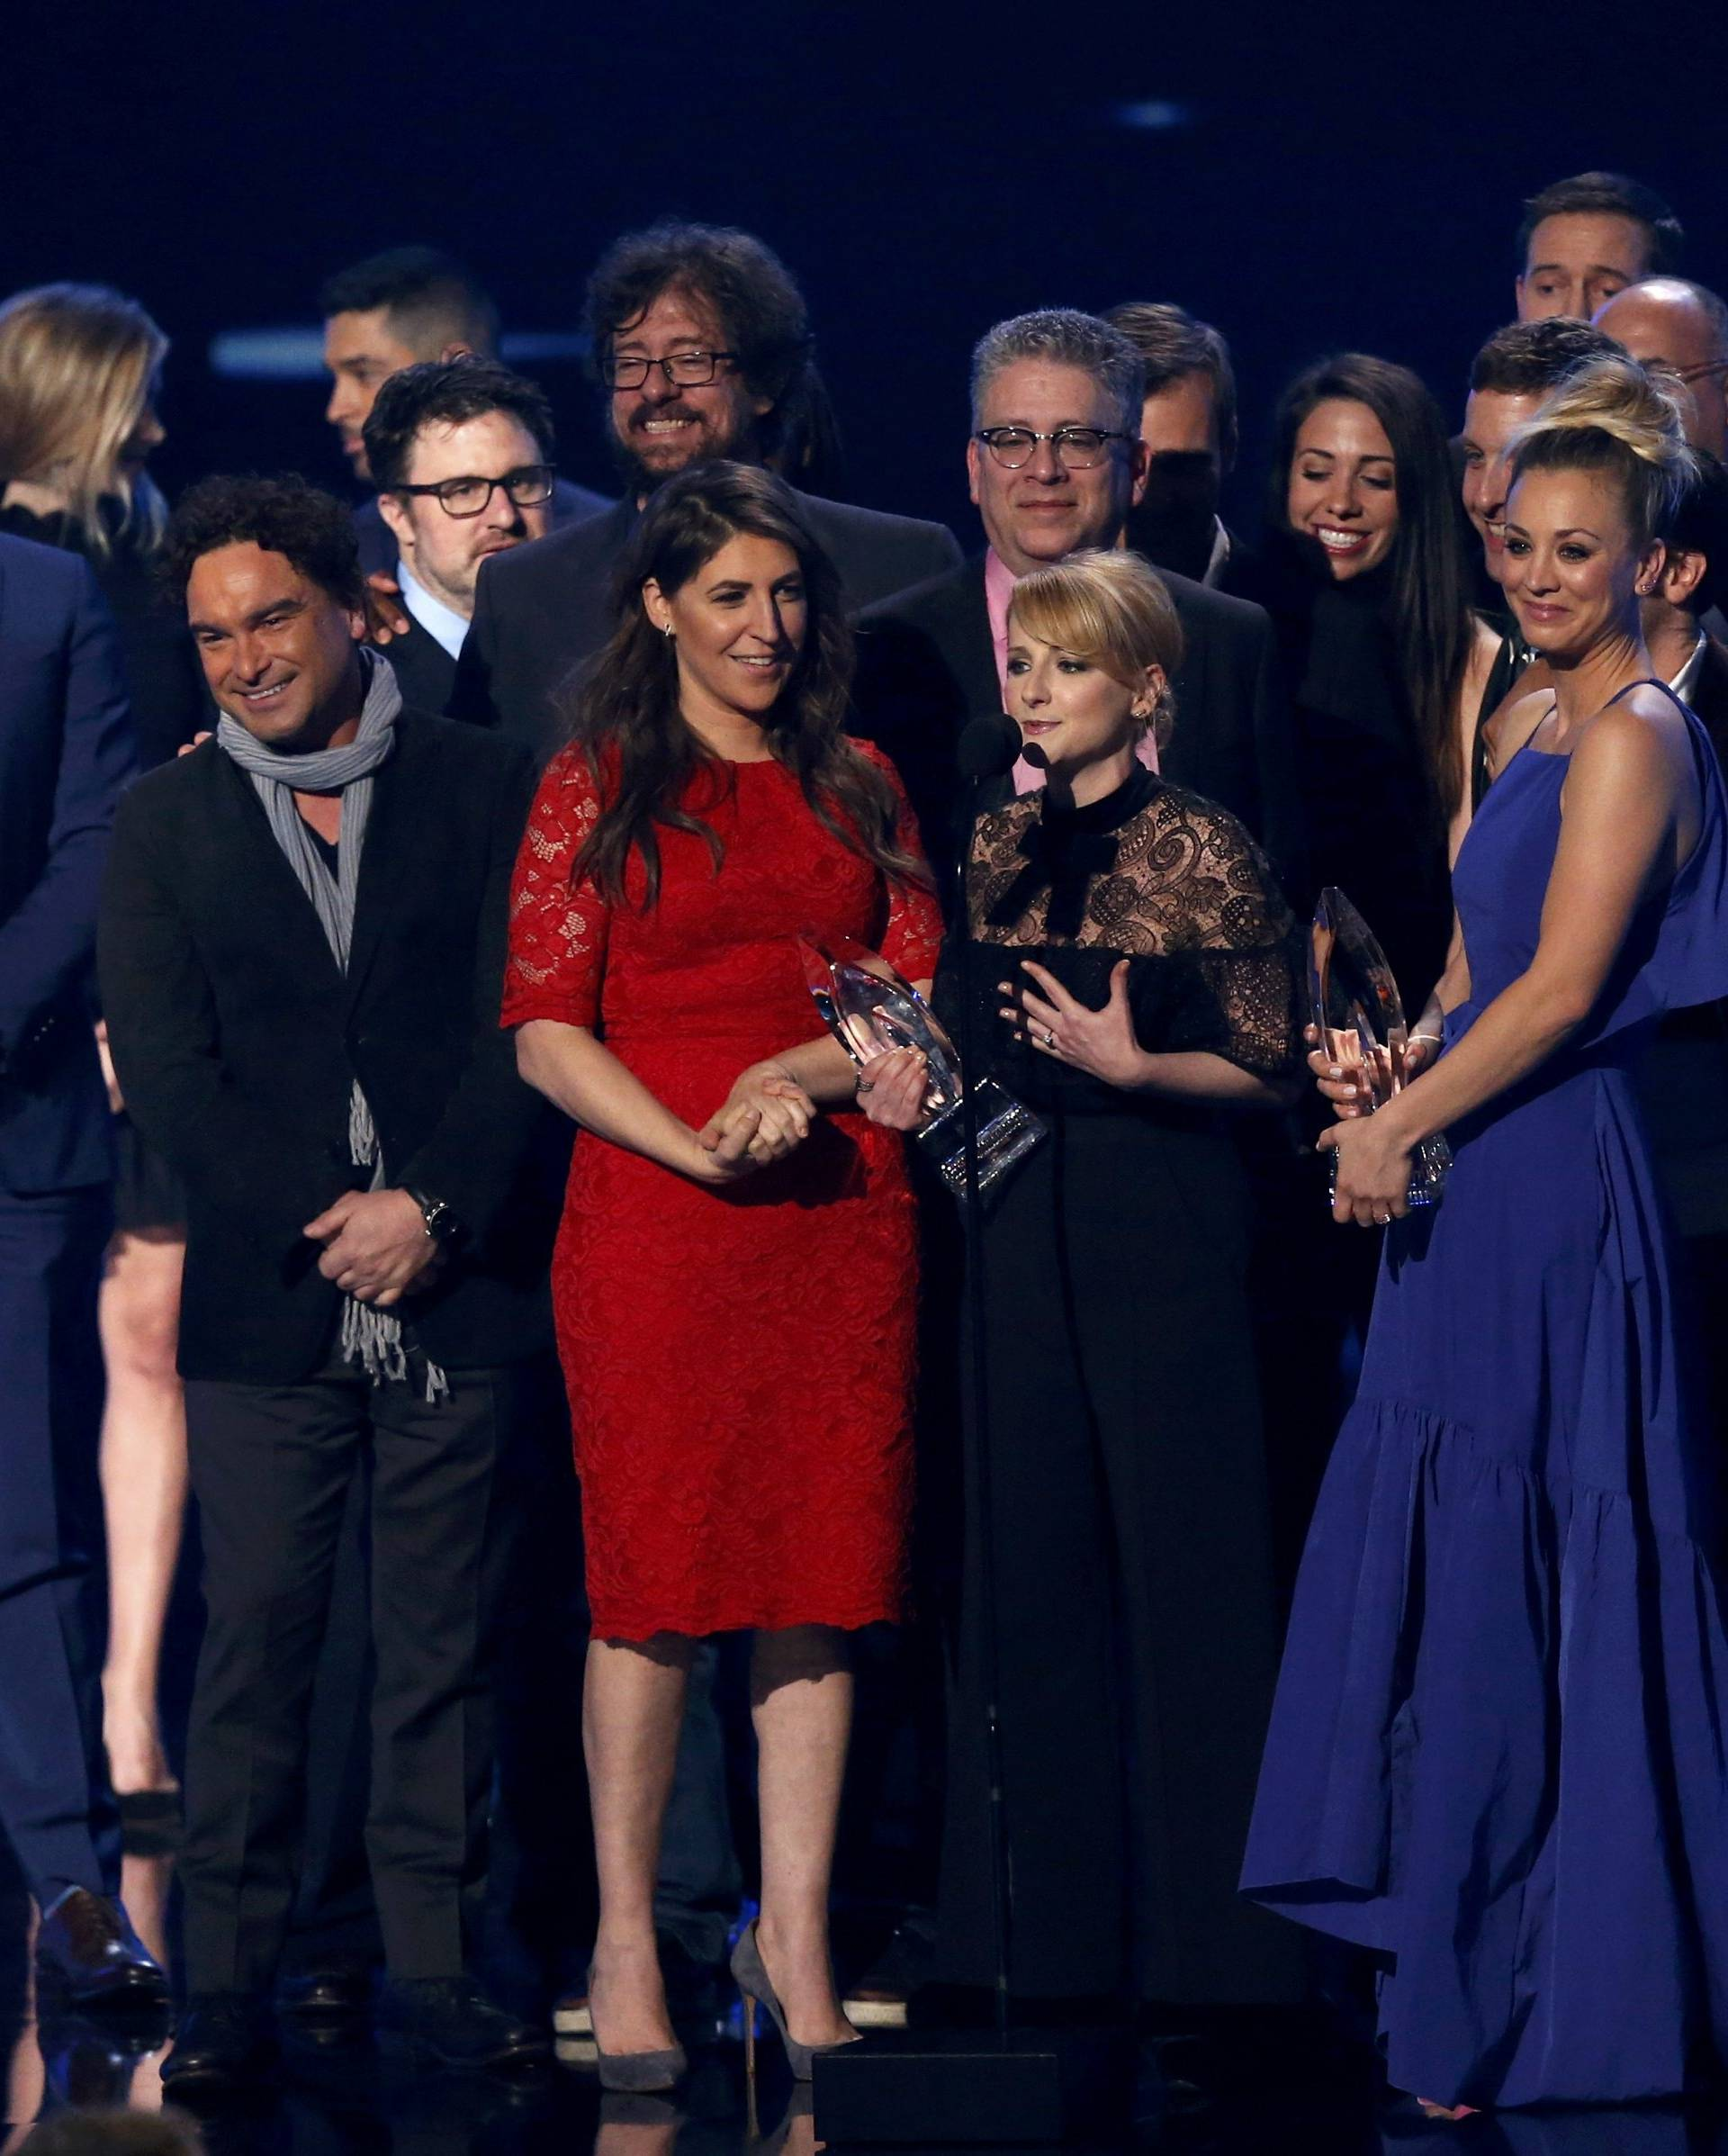 """The cast of """"The Big Bang Theory"""" accepts the award for Favorite Network TV Comedy at the People's Choice Awards 2017 in Los Angeles"""